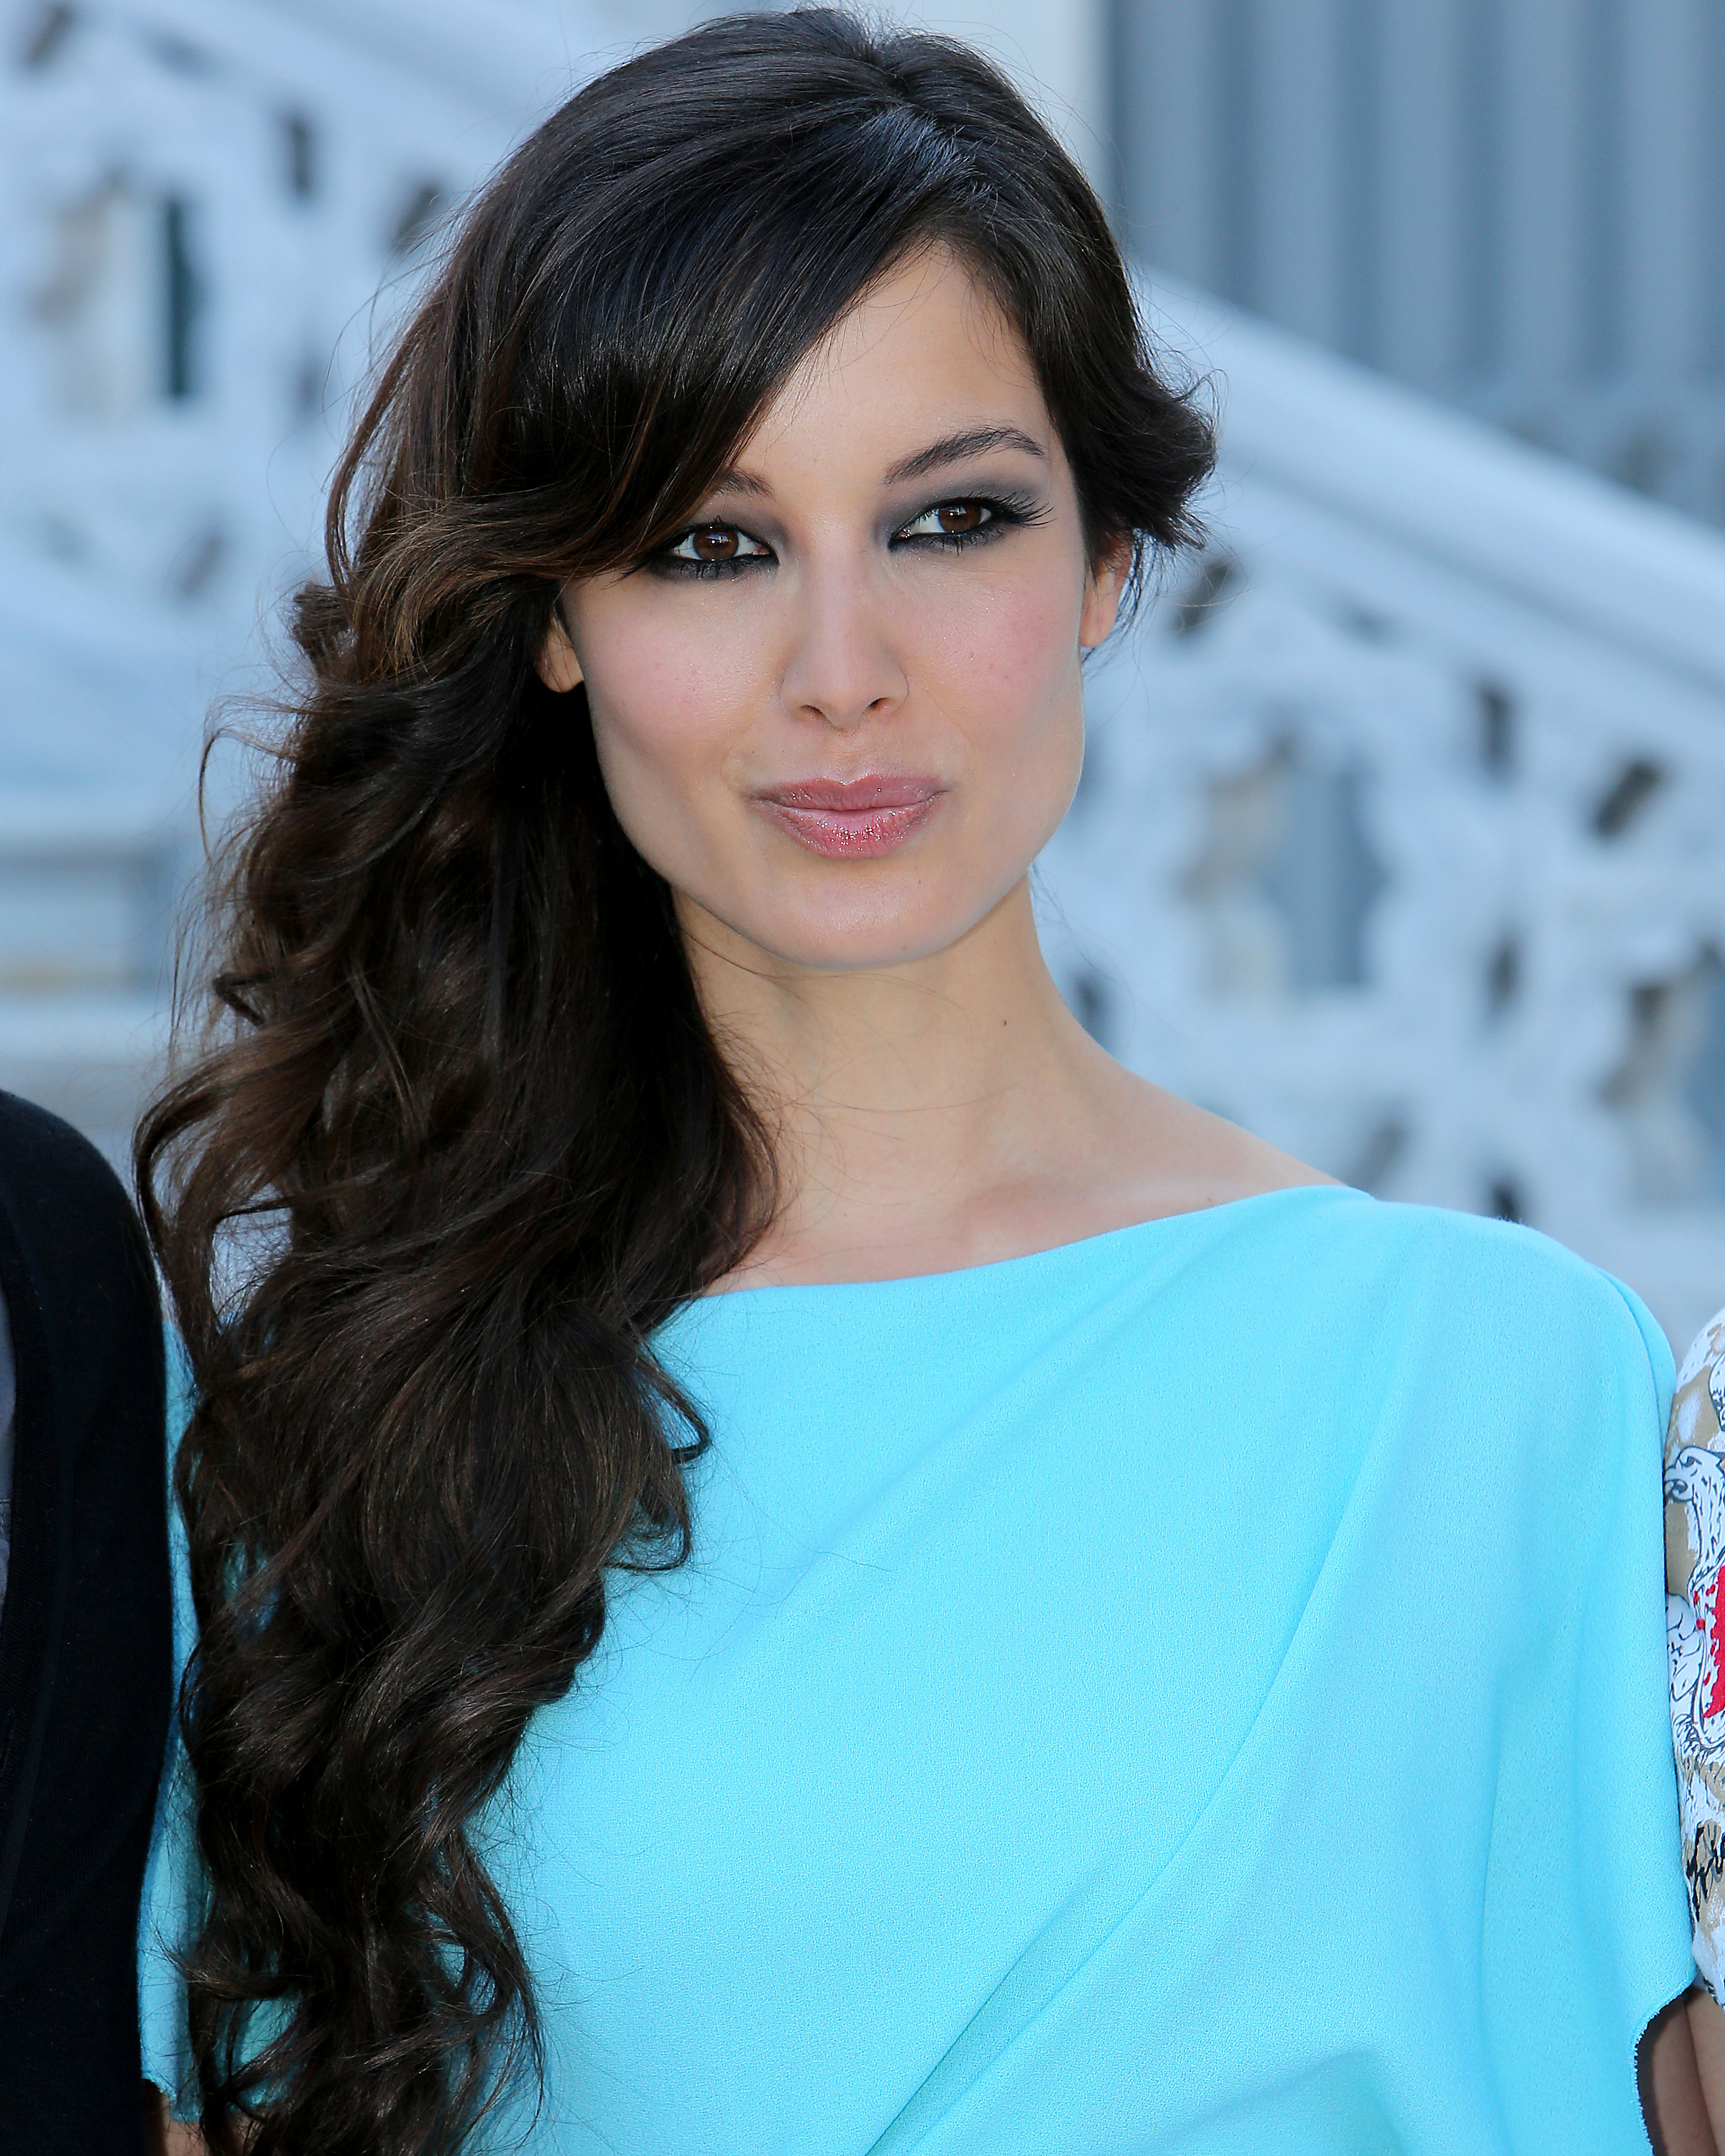 berenice marlohe severin in Skyfall Bond 23